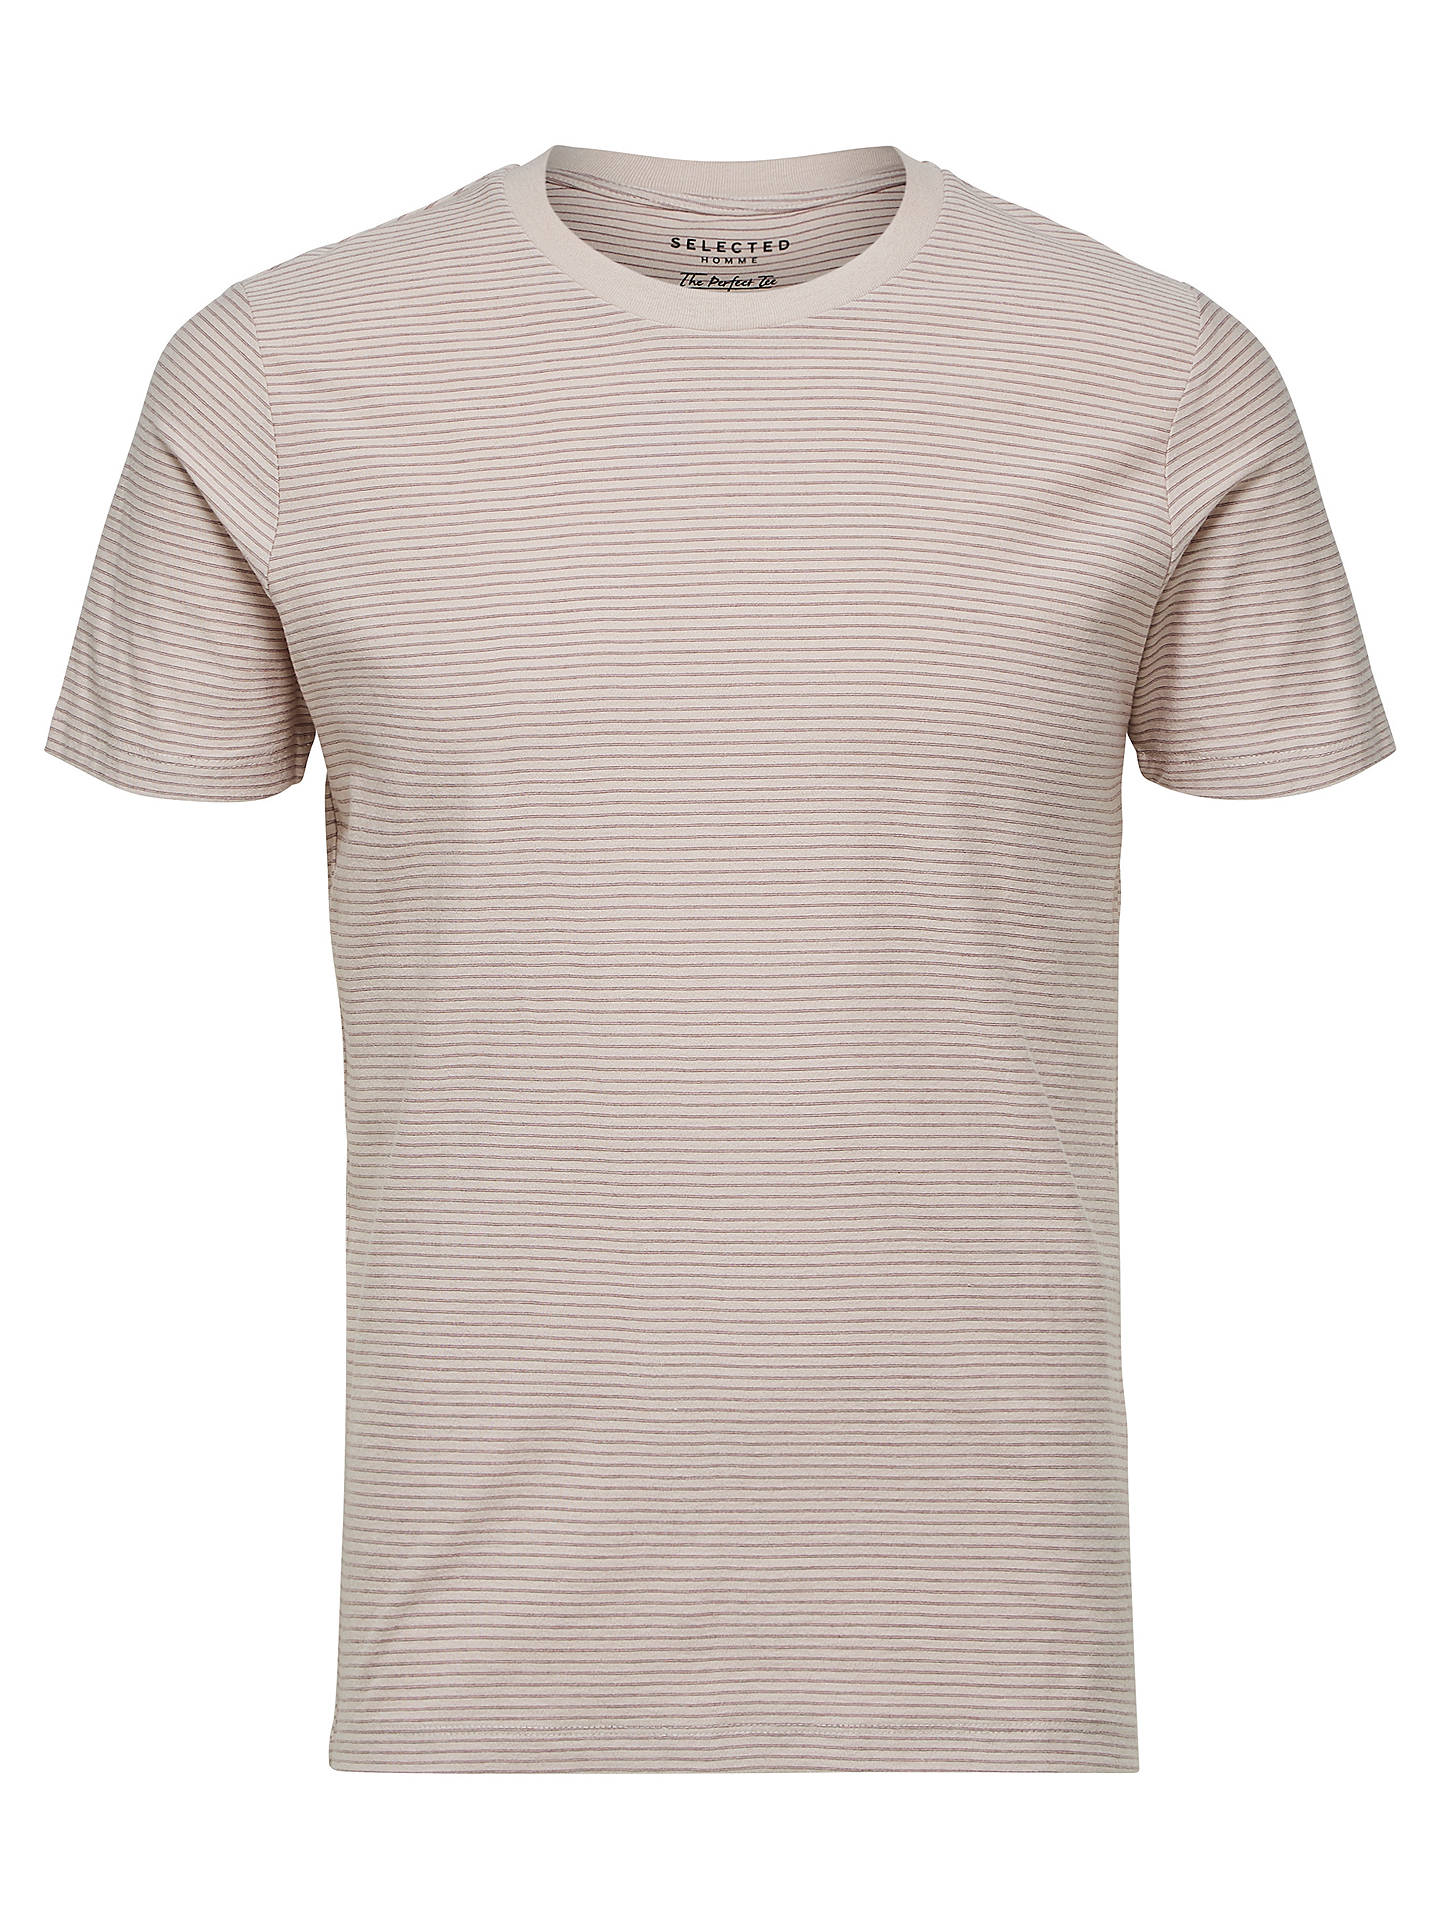 BuySelected Homme 'The Perfect Tee' Pima Cotton T-Shirt, Rose Brown, S Online at johnlewis.com